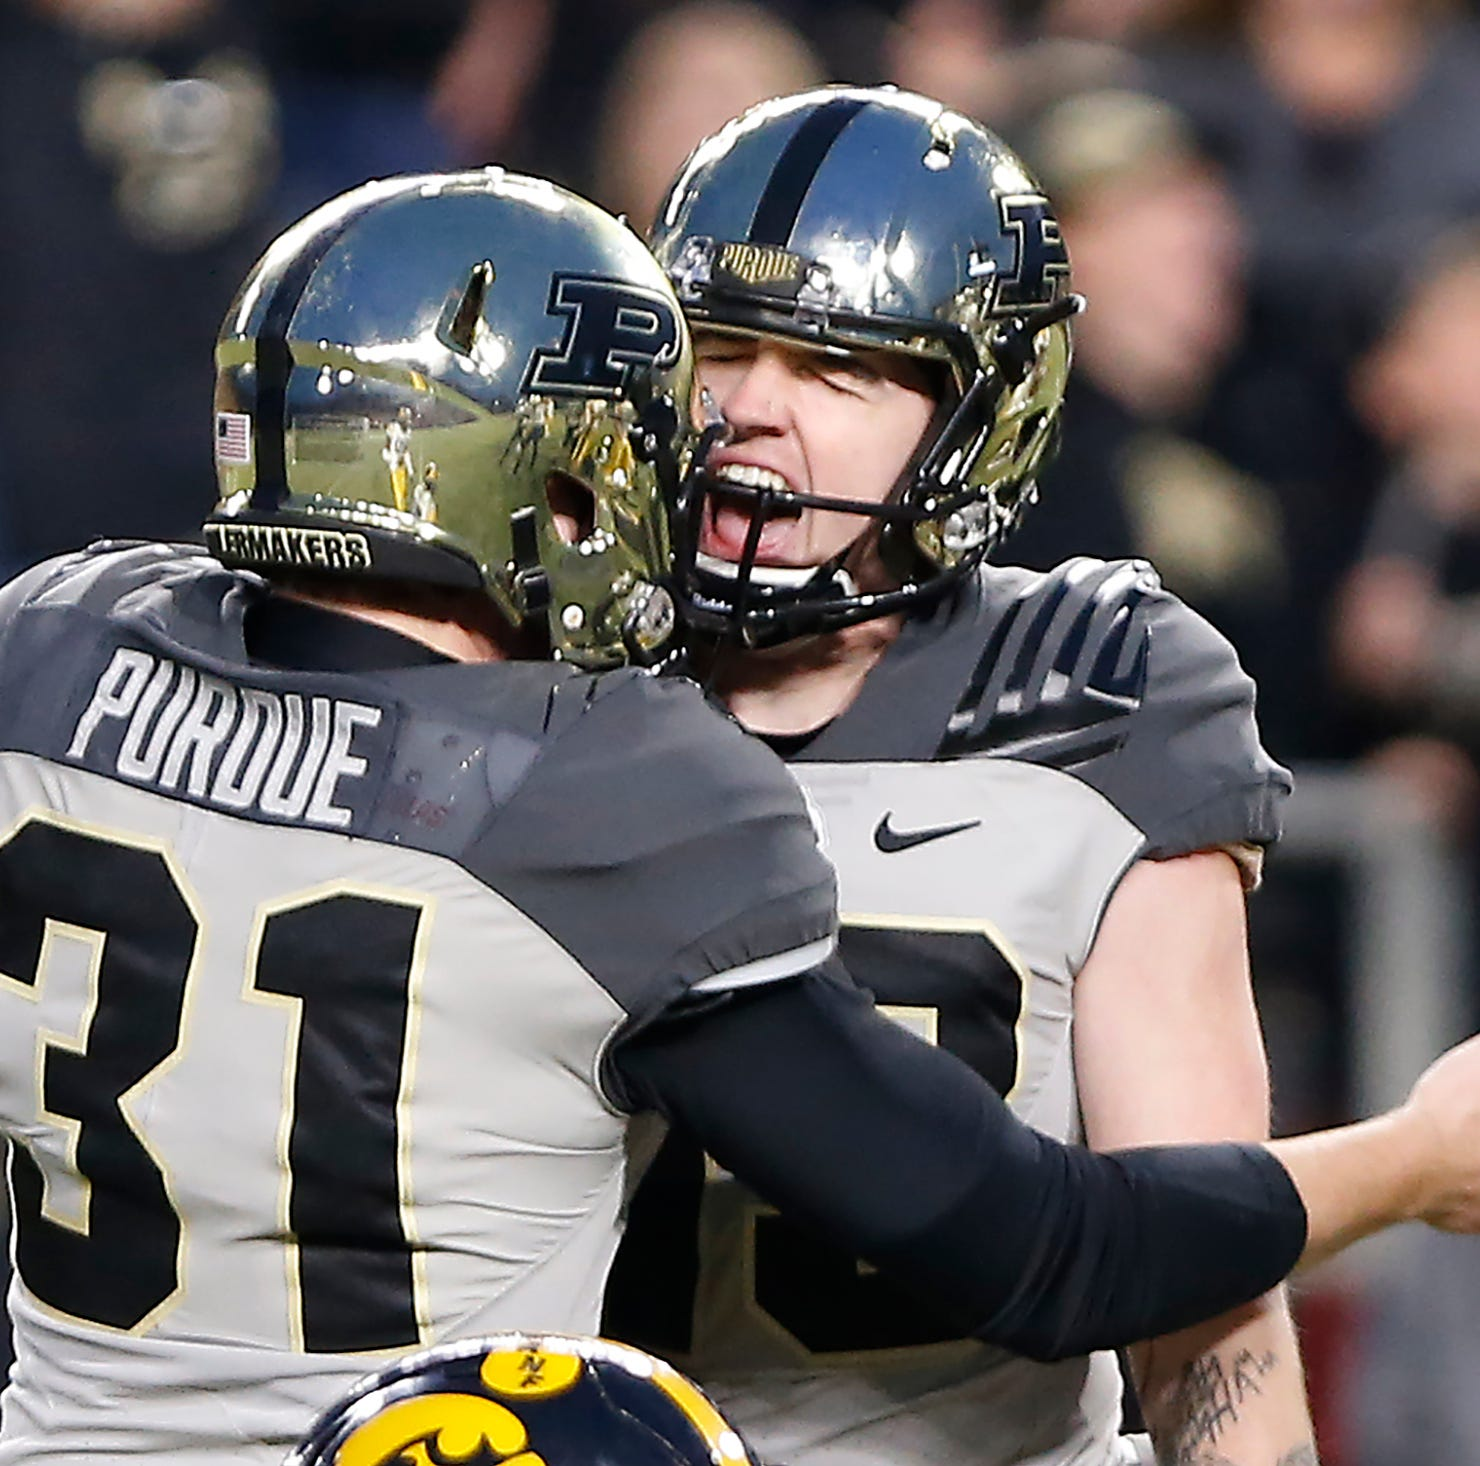 Purdue's Spencer Evans eager to join Chicago Bears kicking competition